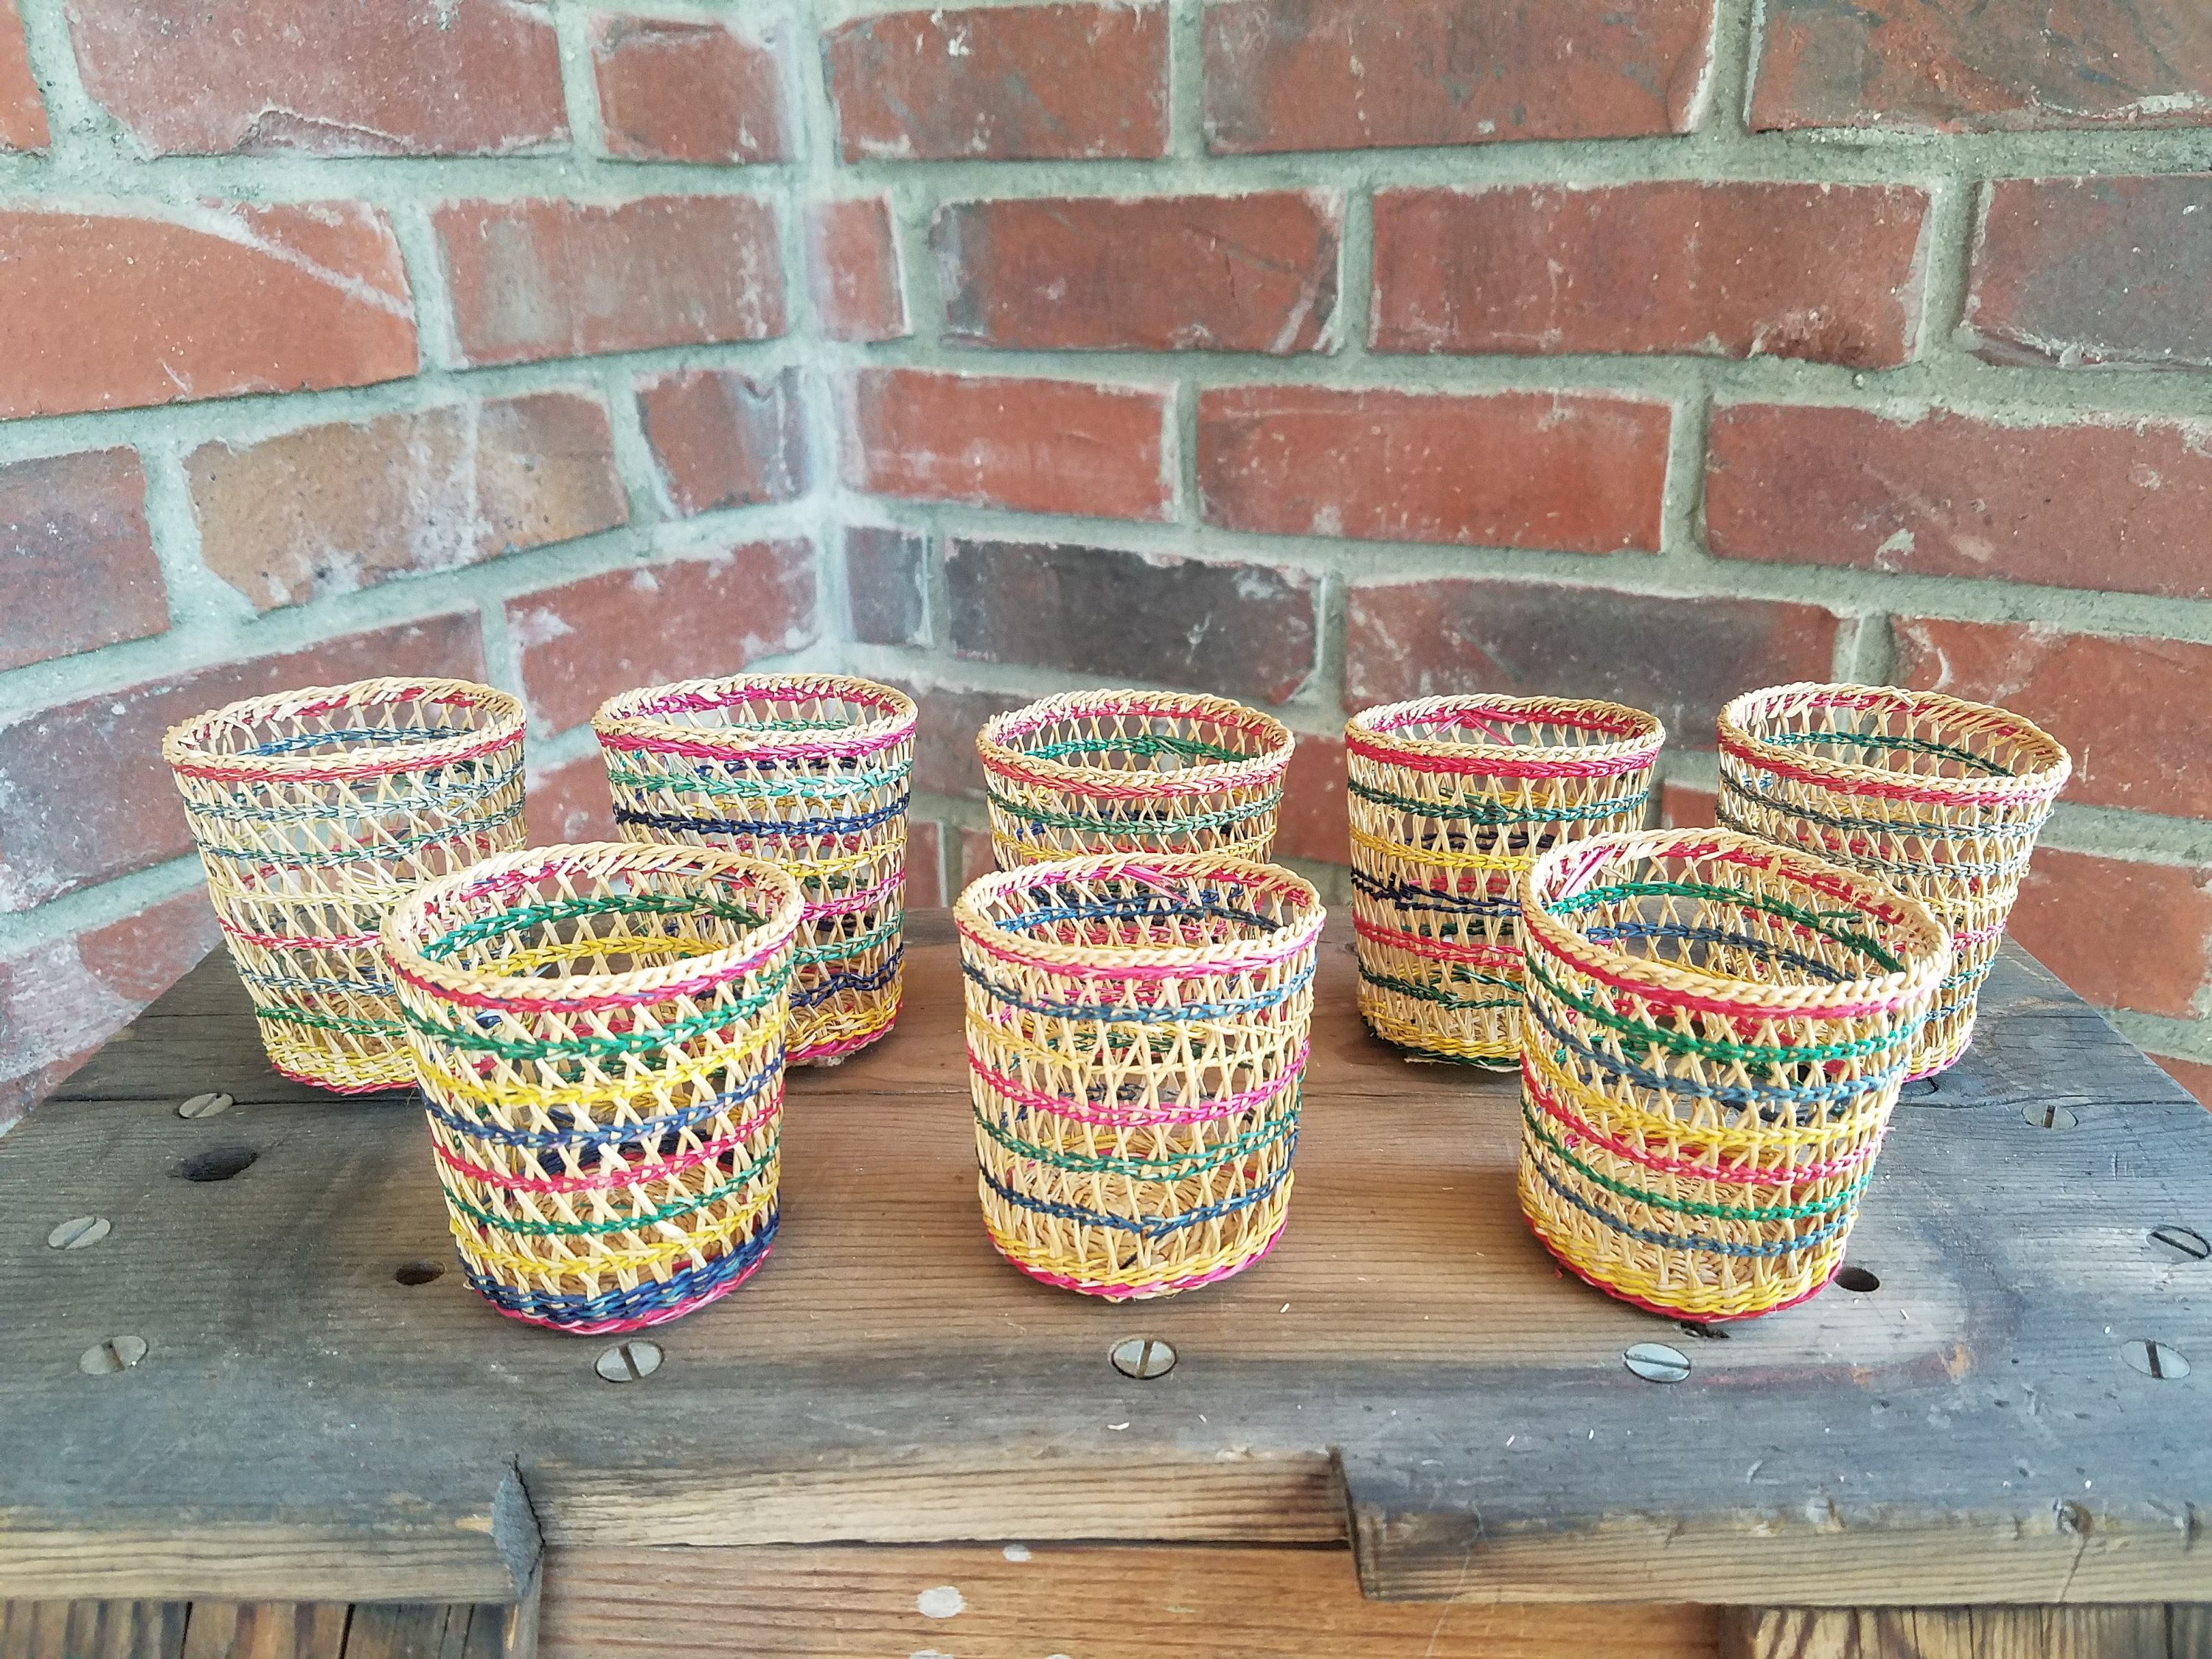 small woven wall hanging woven tray decorative woven wall.htm rattan drink cozies woven glass covers  woven drink holders  boho  rattan drink cozies woven glass covers